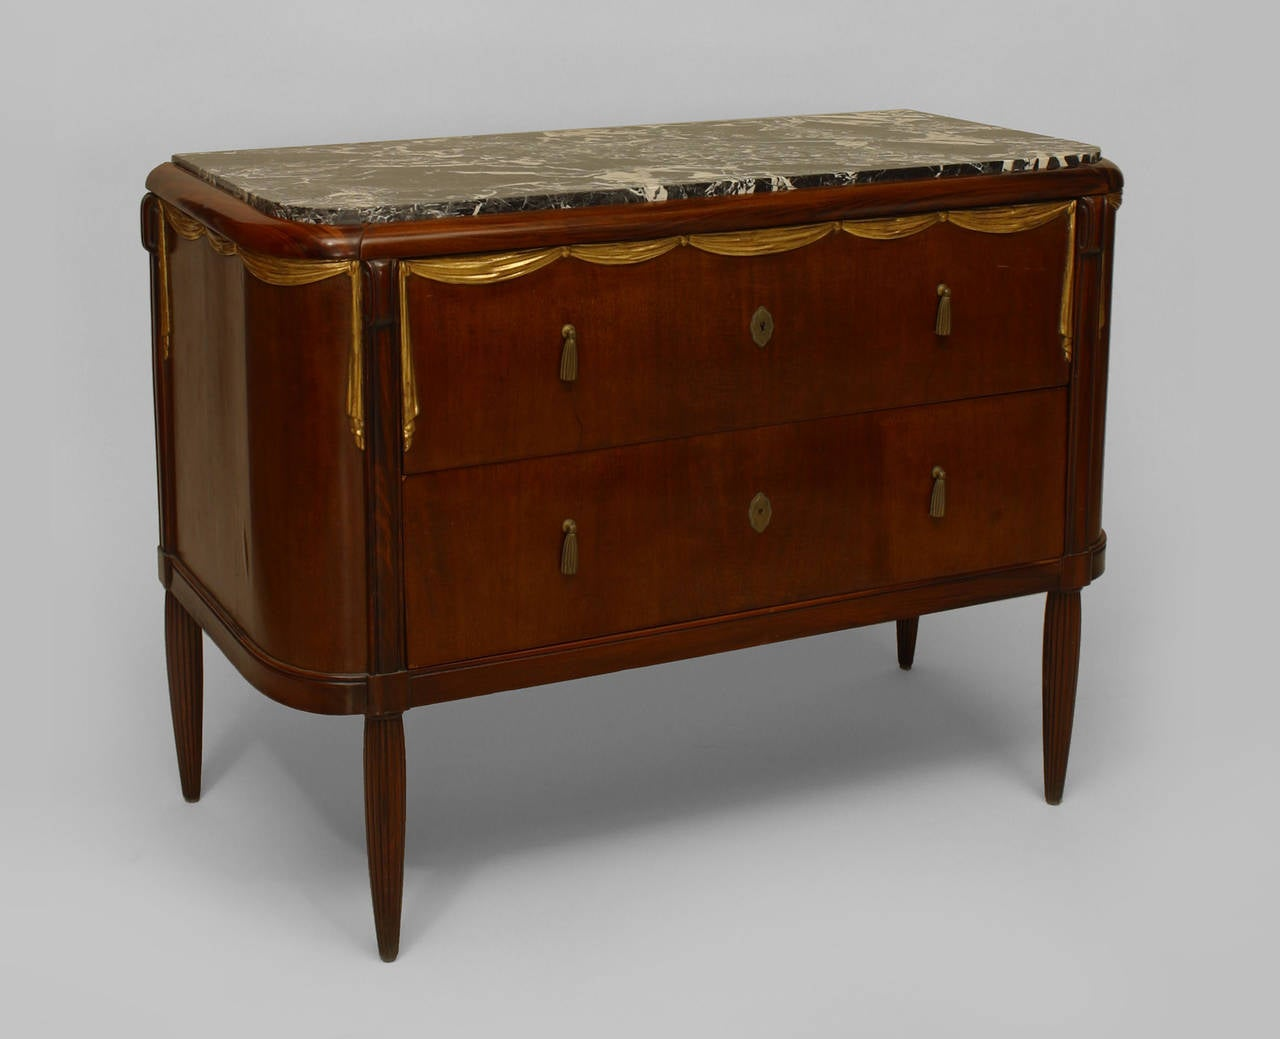 art deco parcel gilt marble top commode attributed to maurice dufrene for sale at 1stdibs. Black Bedroom Furniture Sets. Home Design Ideas